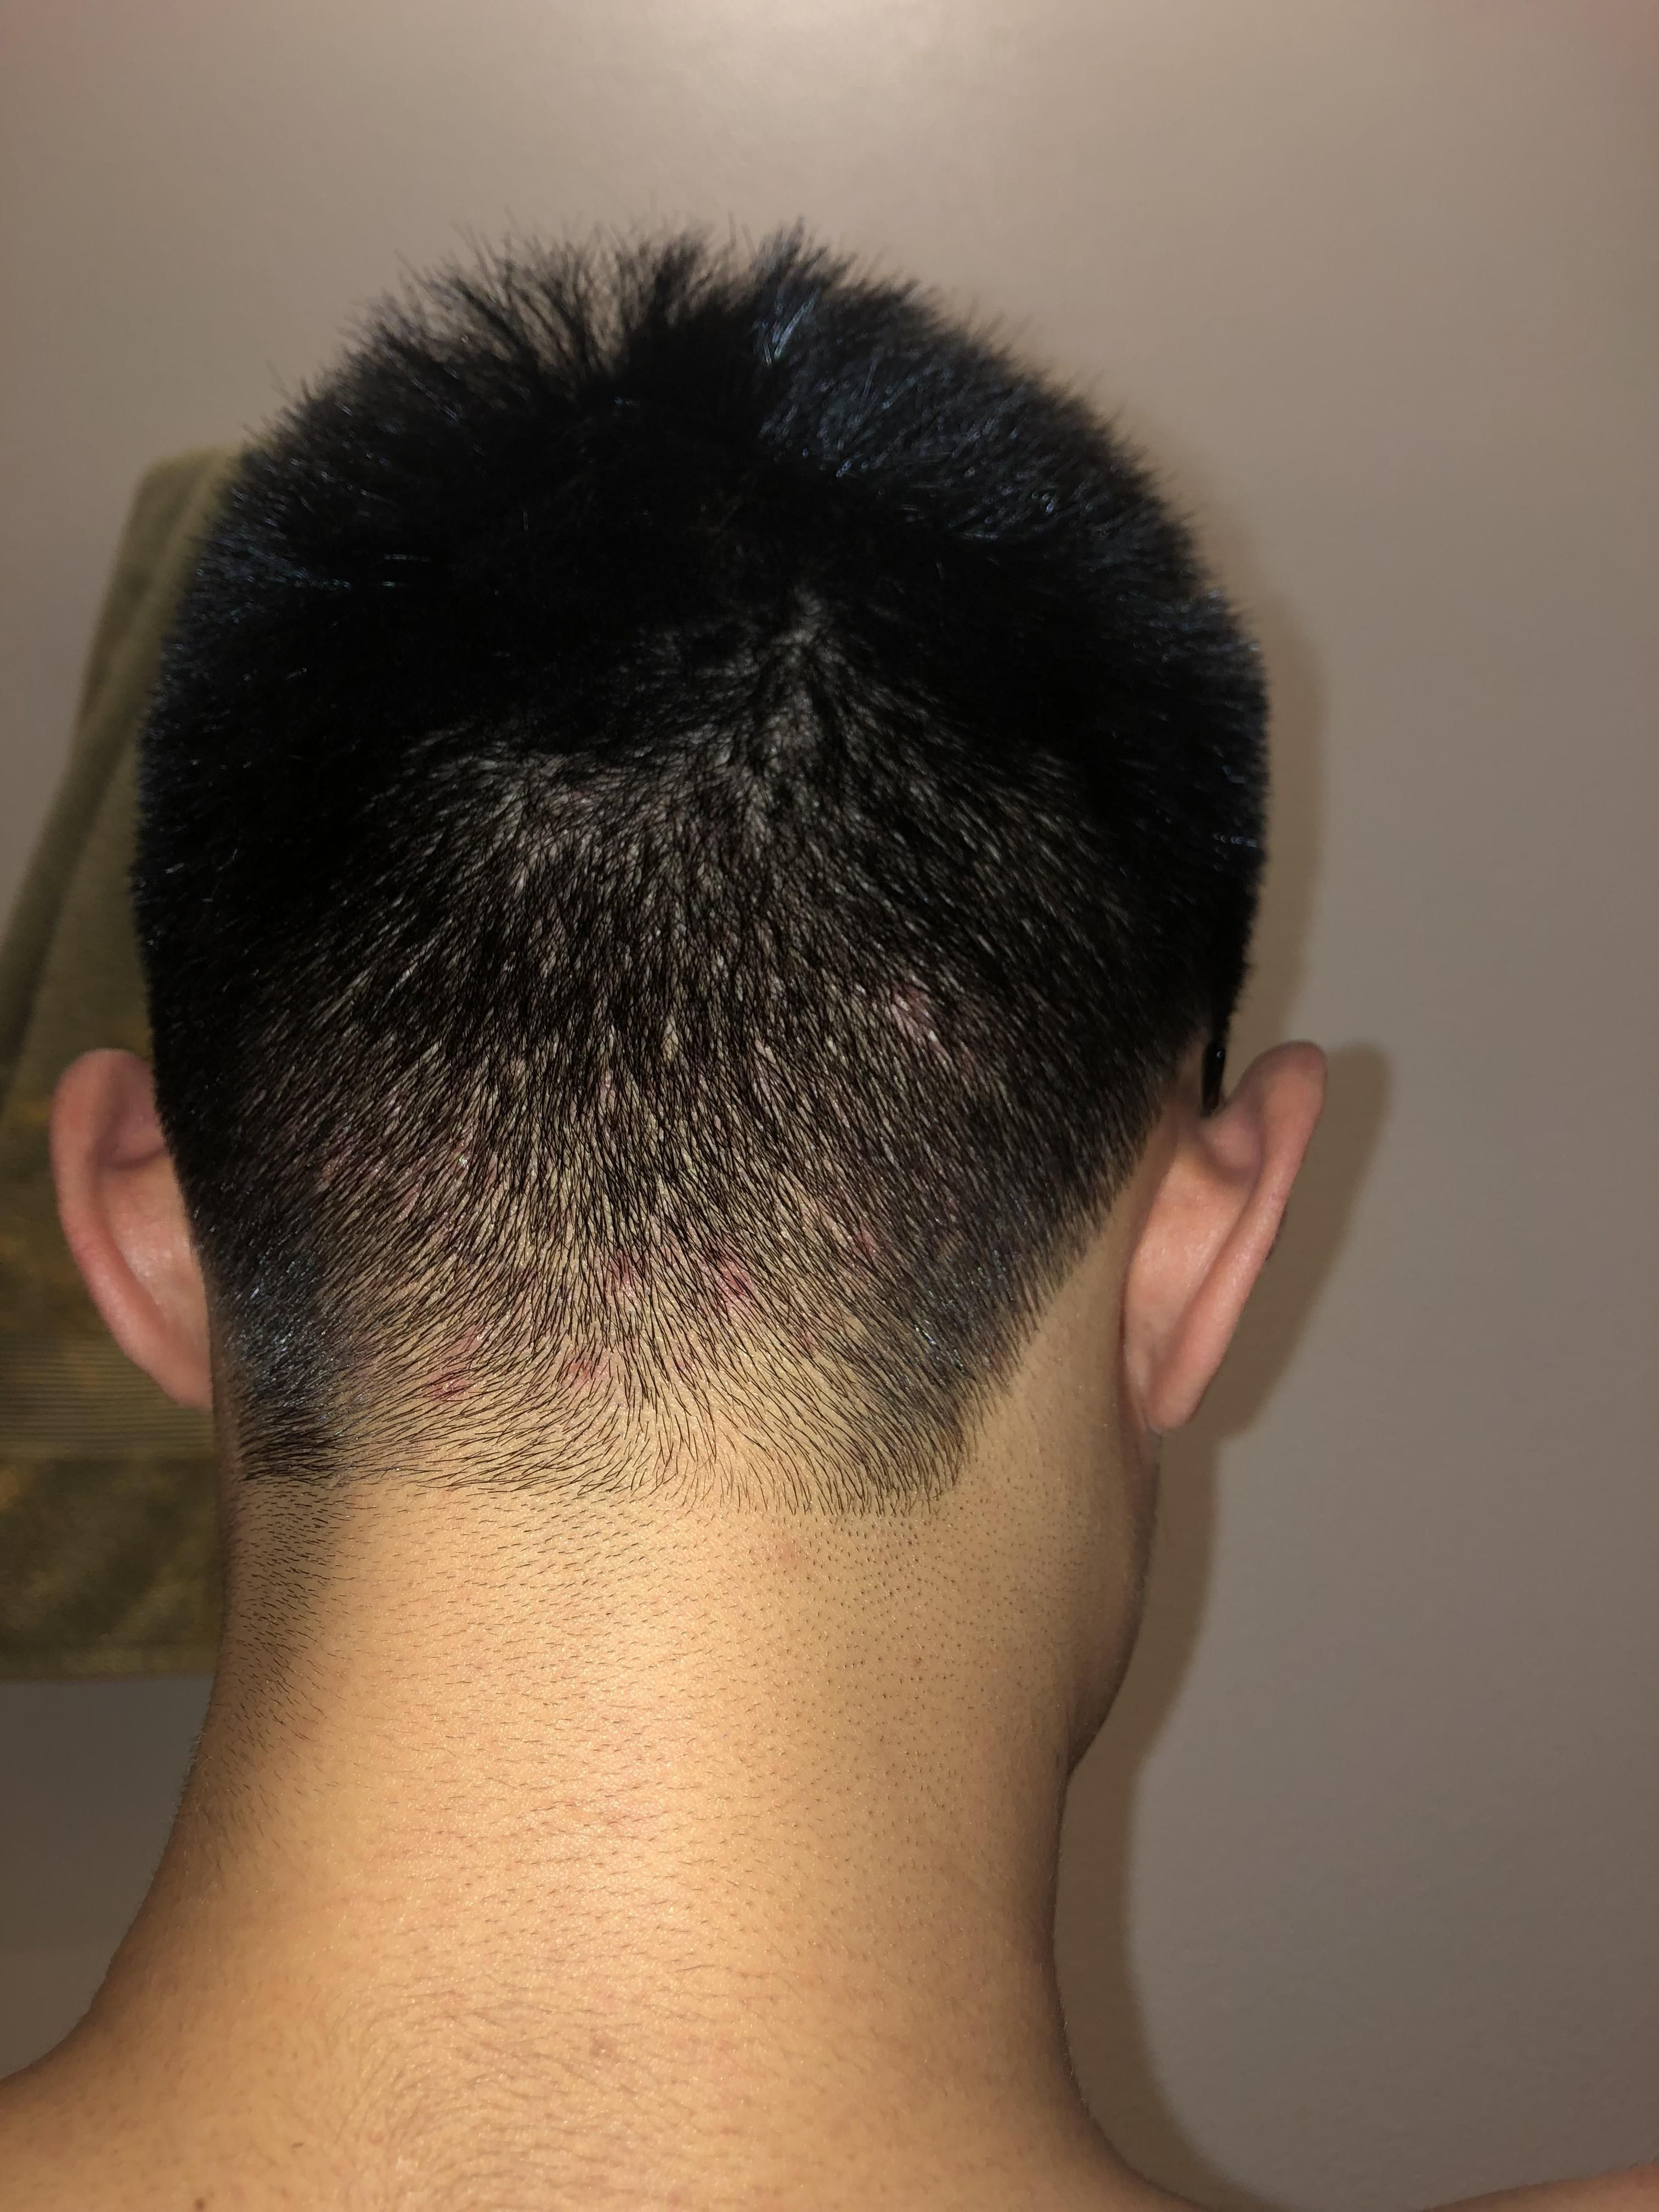 Acne] Red spots/acne on back of neck/scalp  What can I use to get